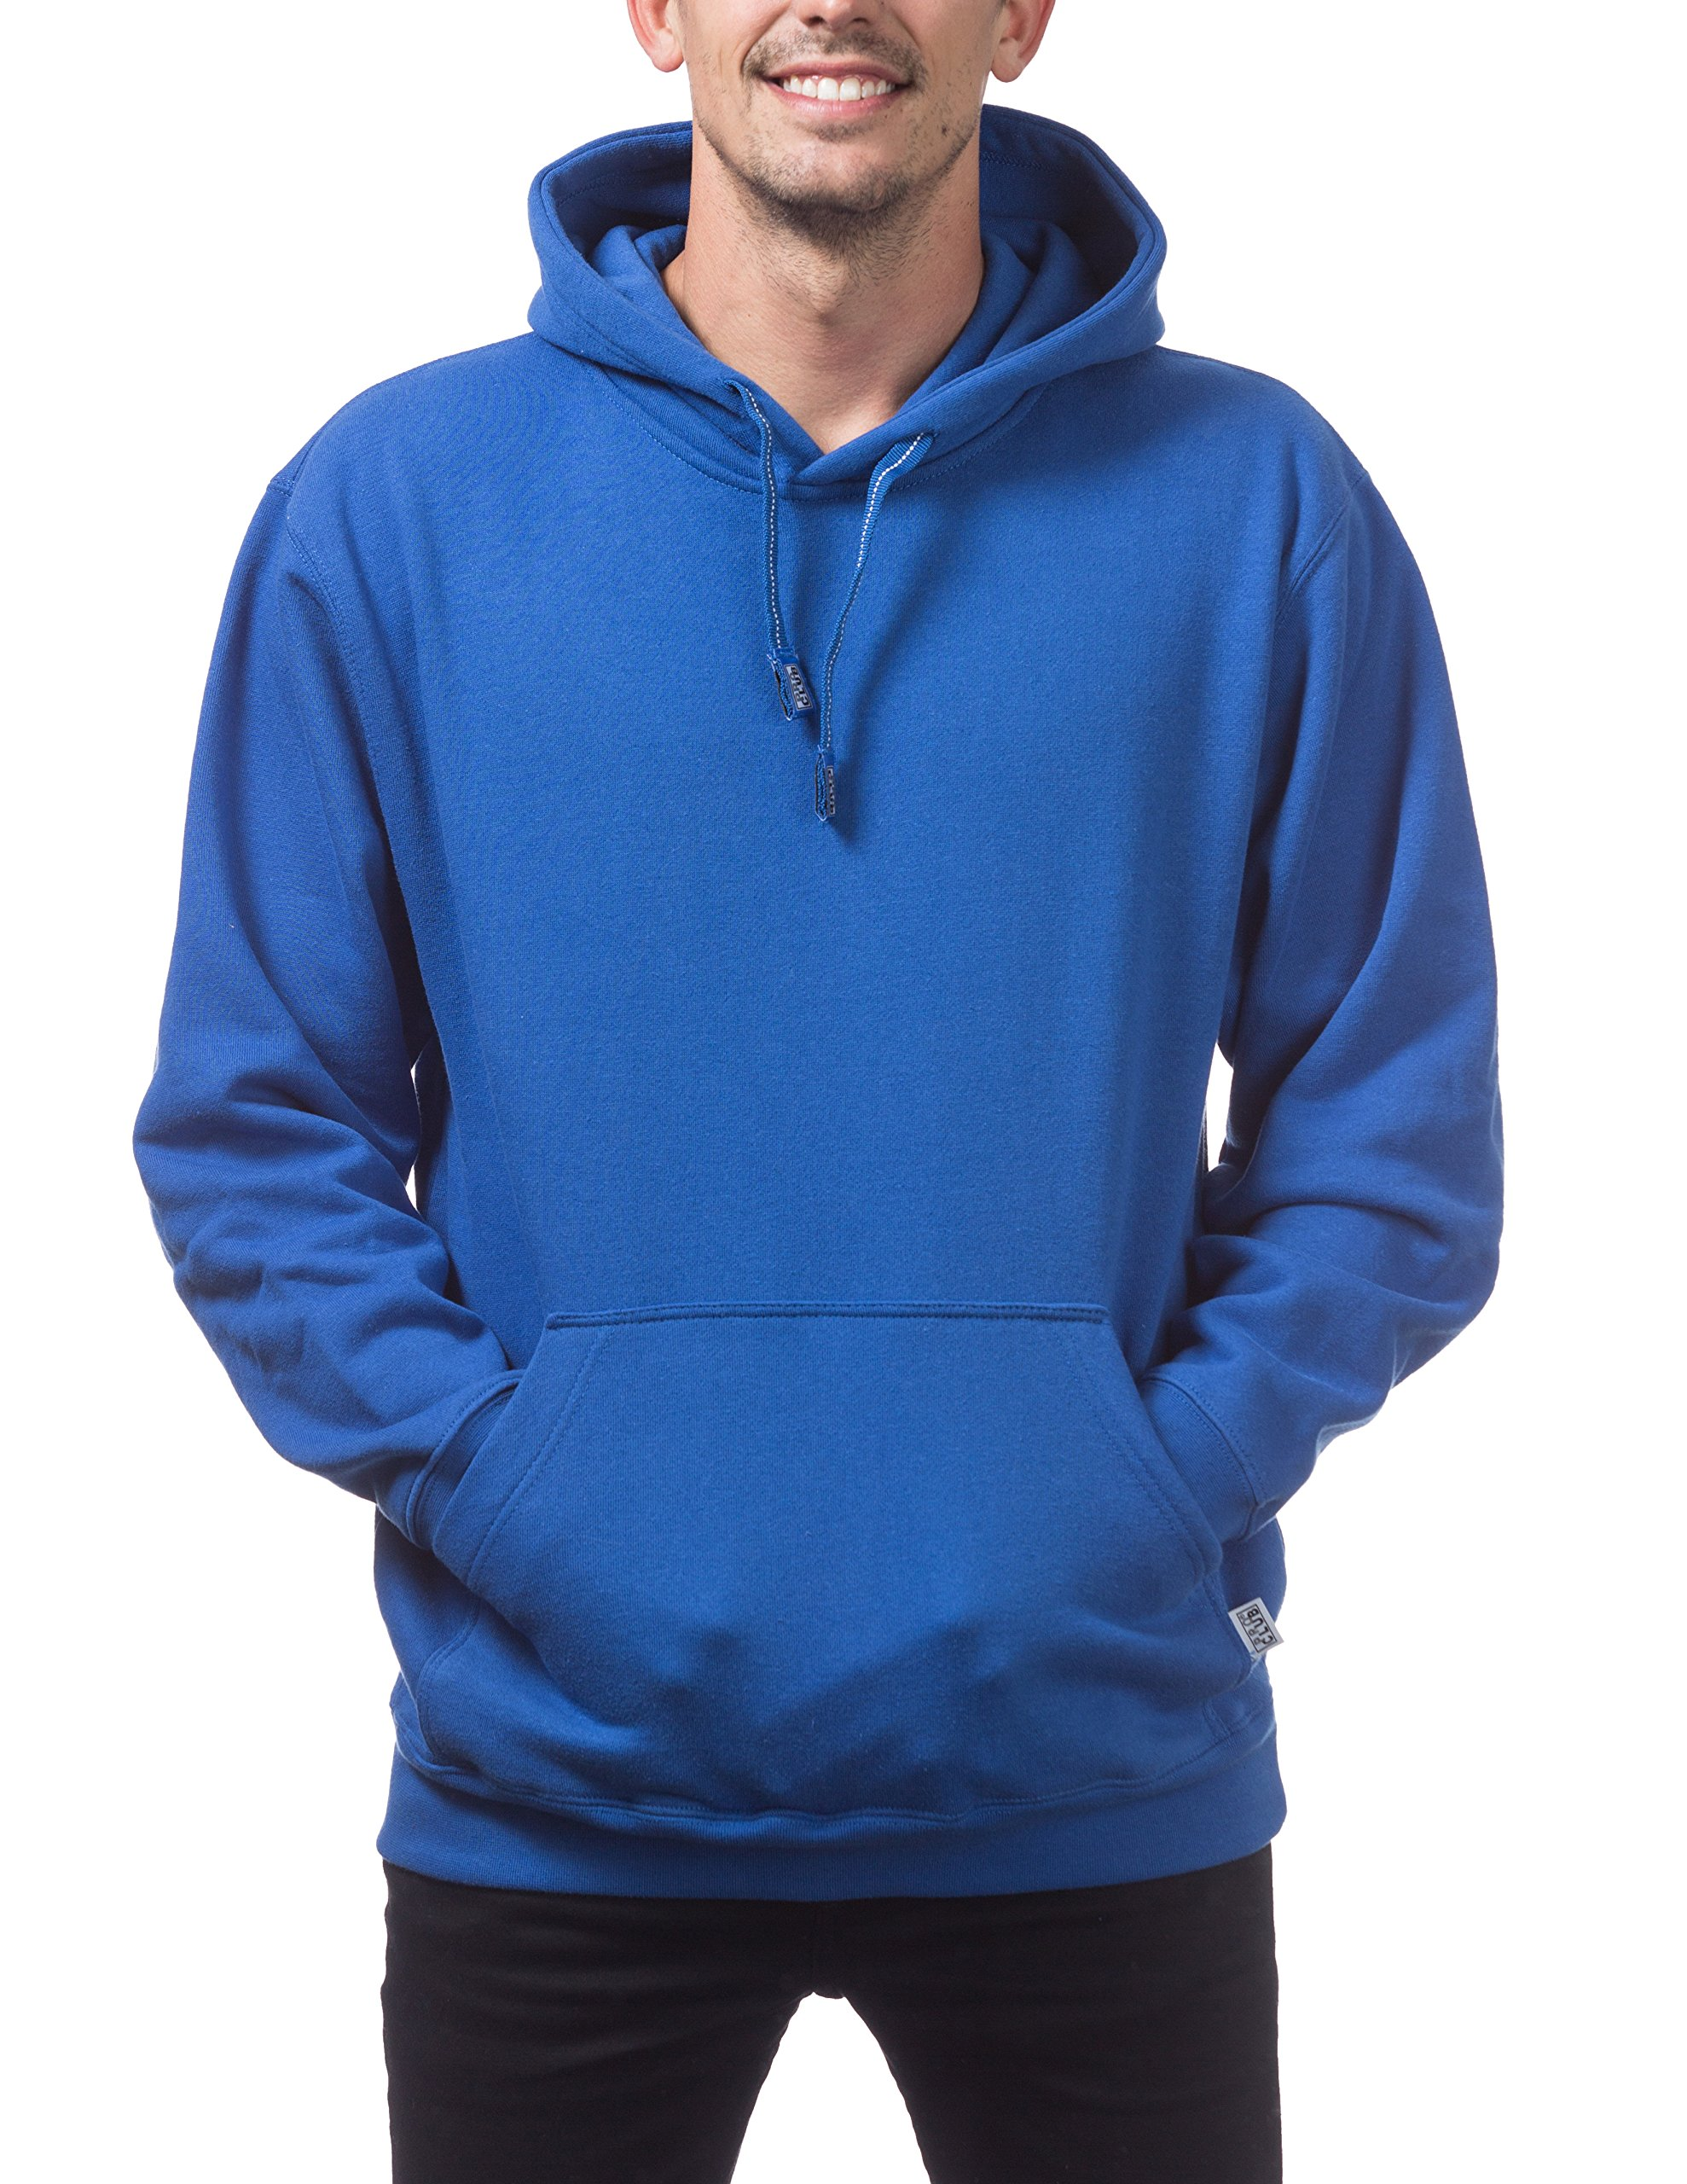 Pro Club Men's Heavyweight Pullover Hoodie (13oz), X-Large, Royal Blue